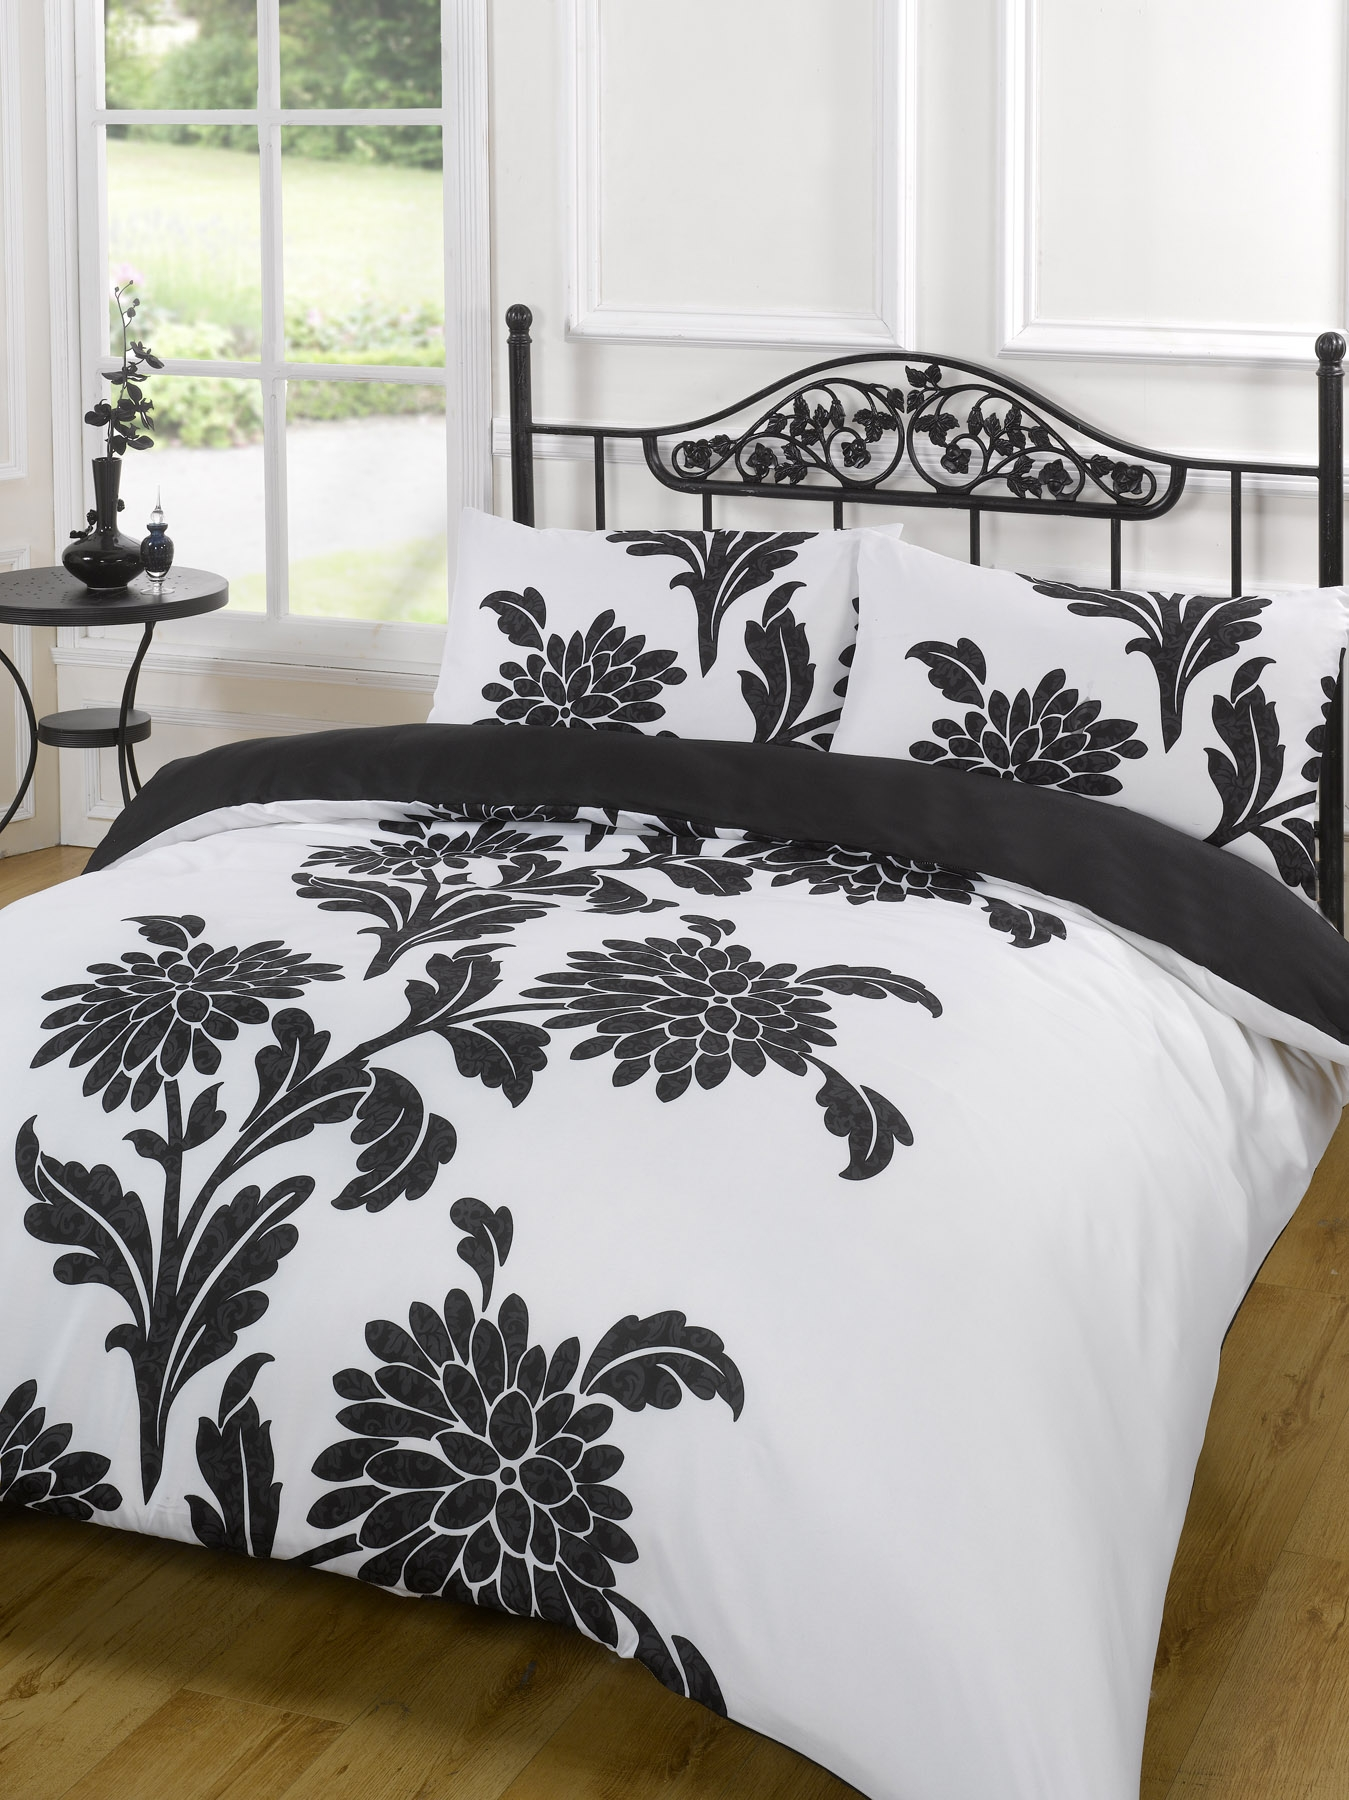 White Duvet Cover King Duvet Quilt Cover Bedding Set Black White Single Double